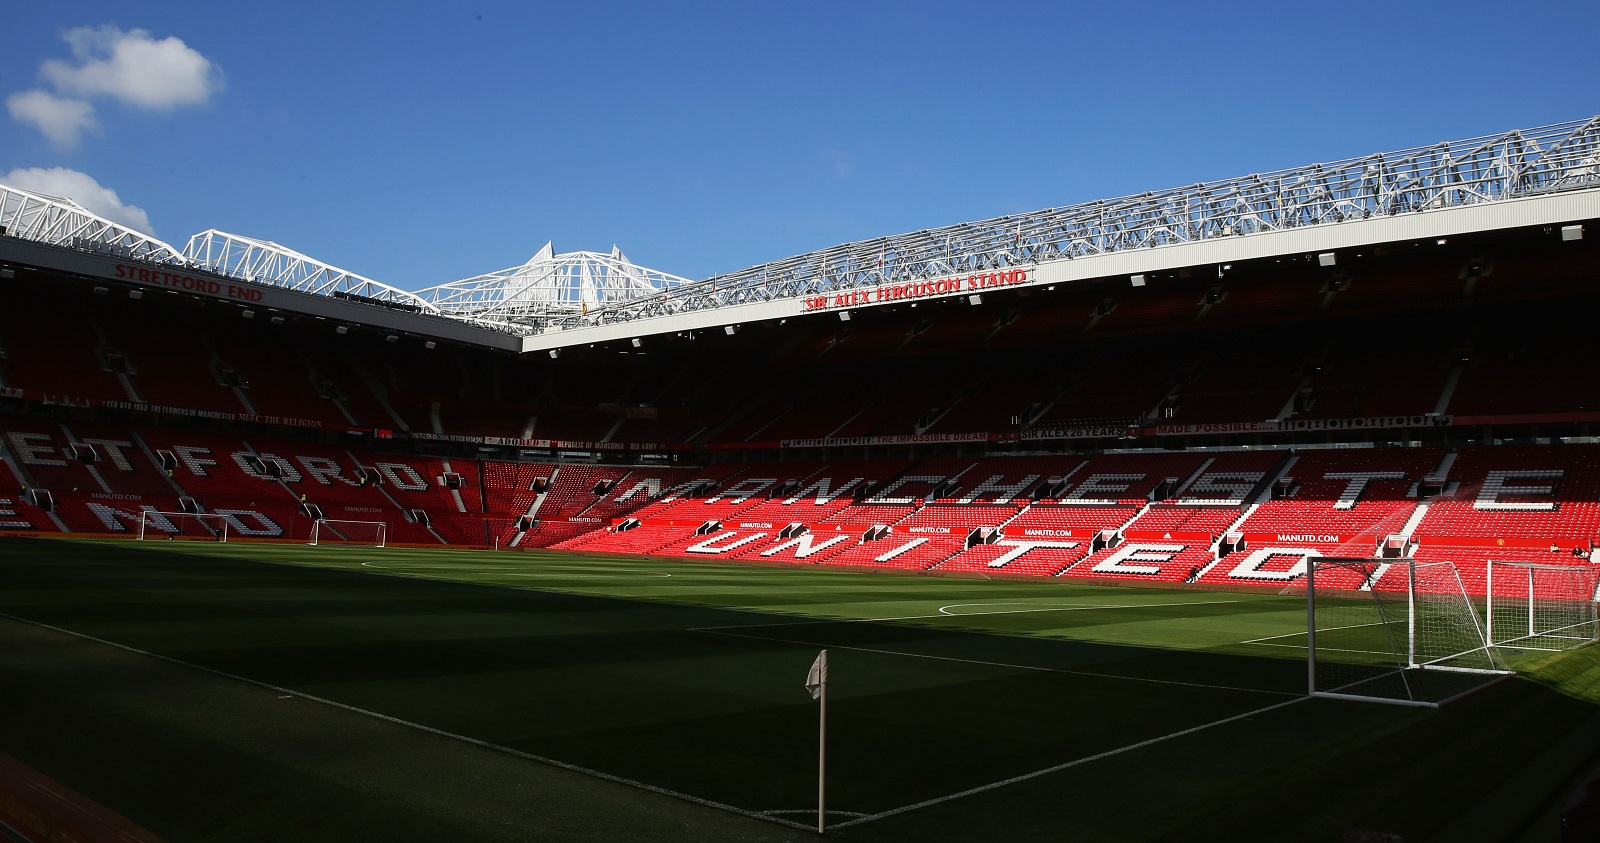 Iconic Old Trafford, the home of Manchester United, is on the Buffalo State women's soccer team's agenda. (Photo by Ian Walton/Getty Images)